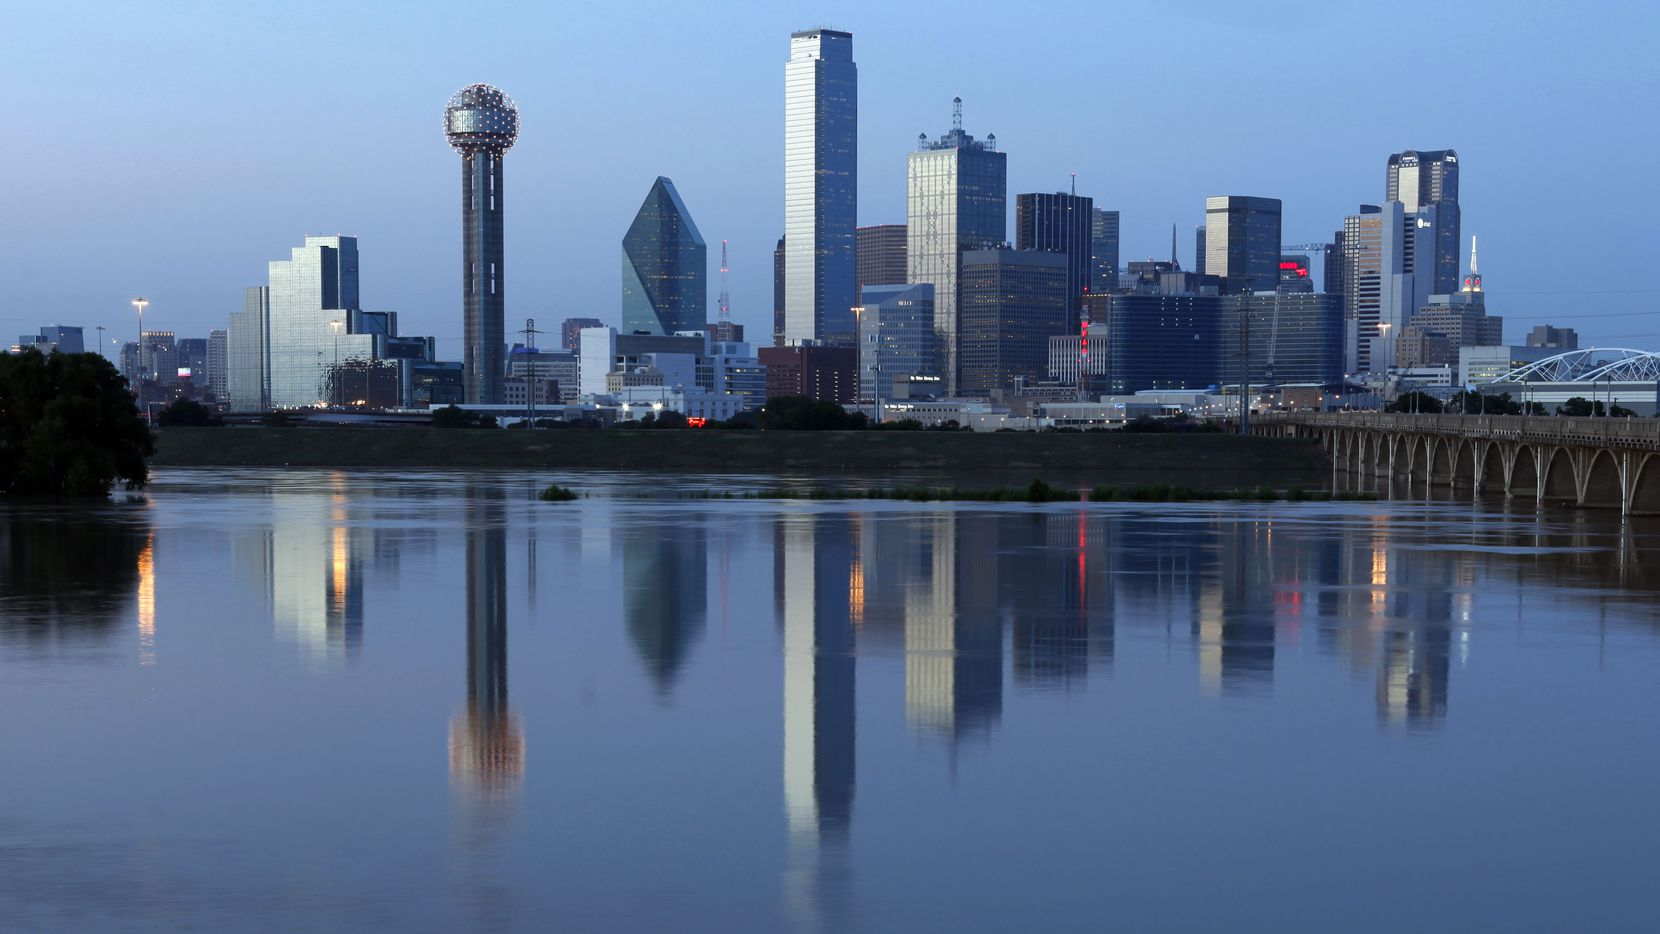 Just over 1 in 3 millennials in Dallas-Fort Worth have a college degree, a lower share than nearly every metro vying for Amazon's next headquarters (G.J. McCarthy/The Dallas Morning News)